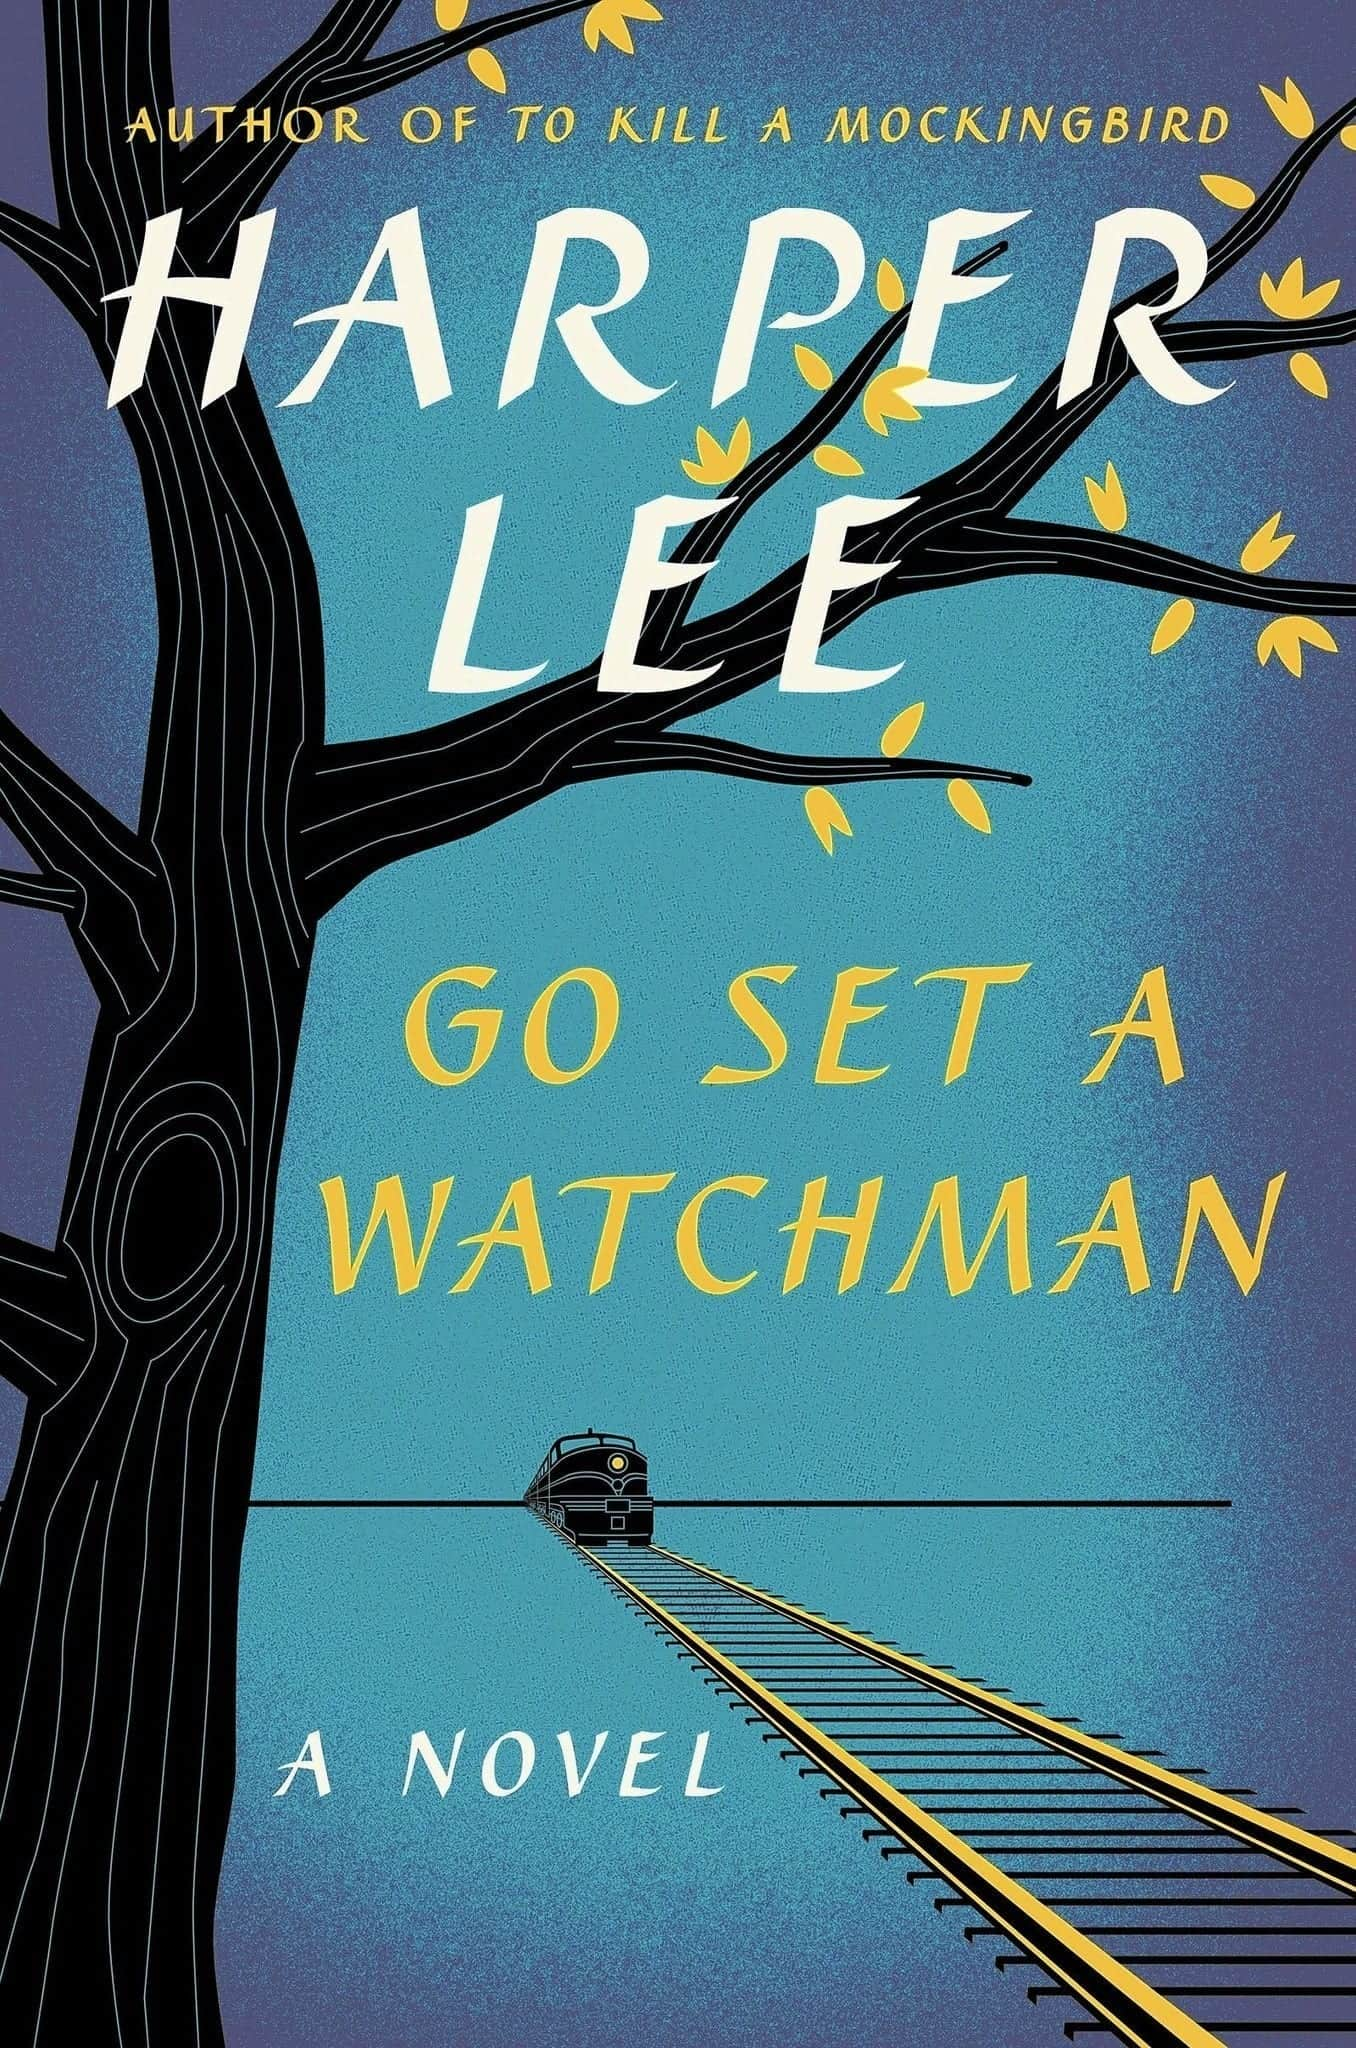 Better late than never, and not without controversy by HarperCollins